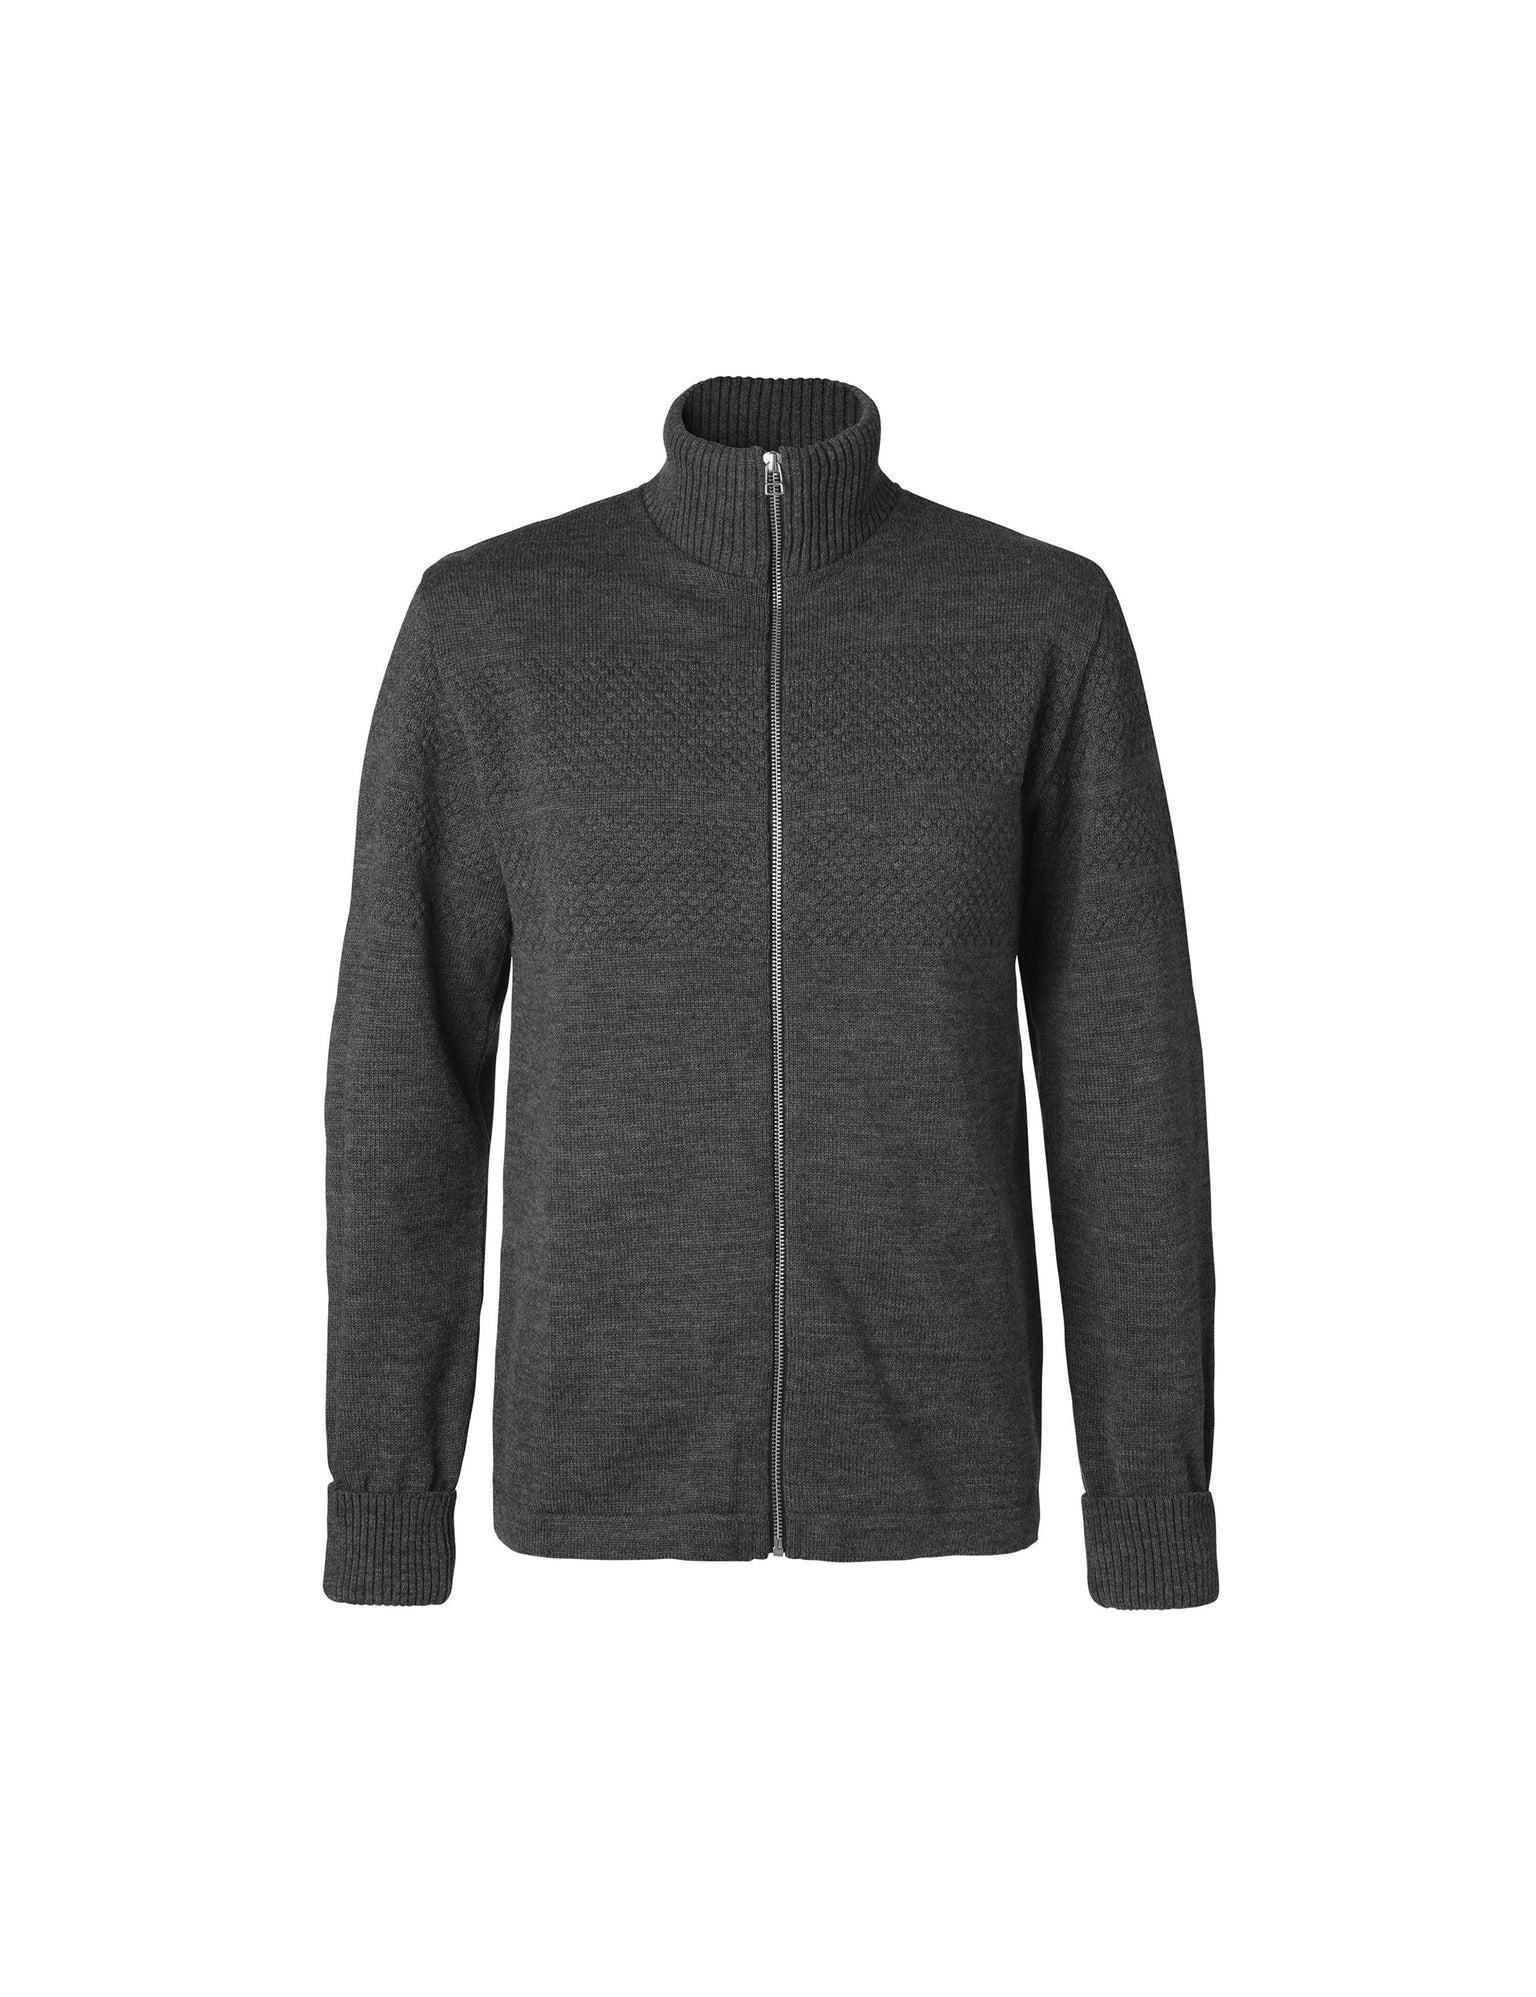 100% Wool Klemens Zip, Charcoal Melange